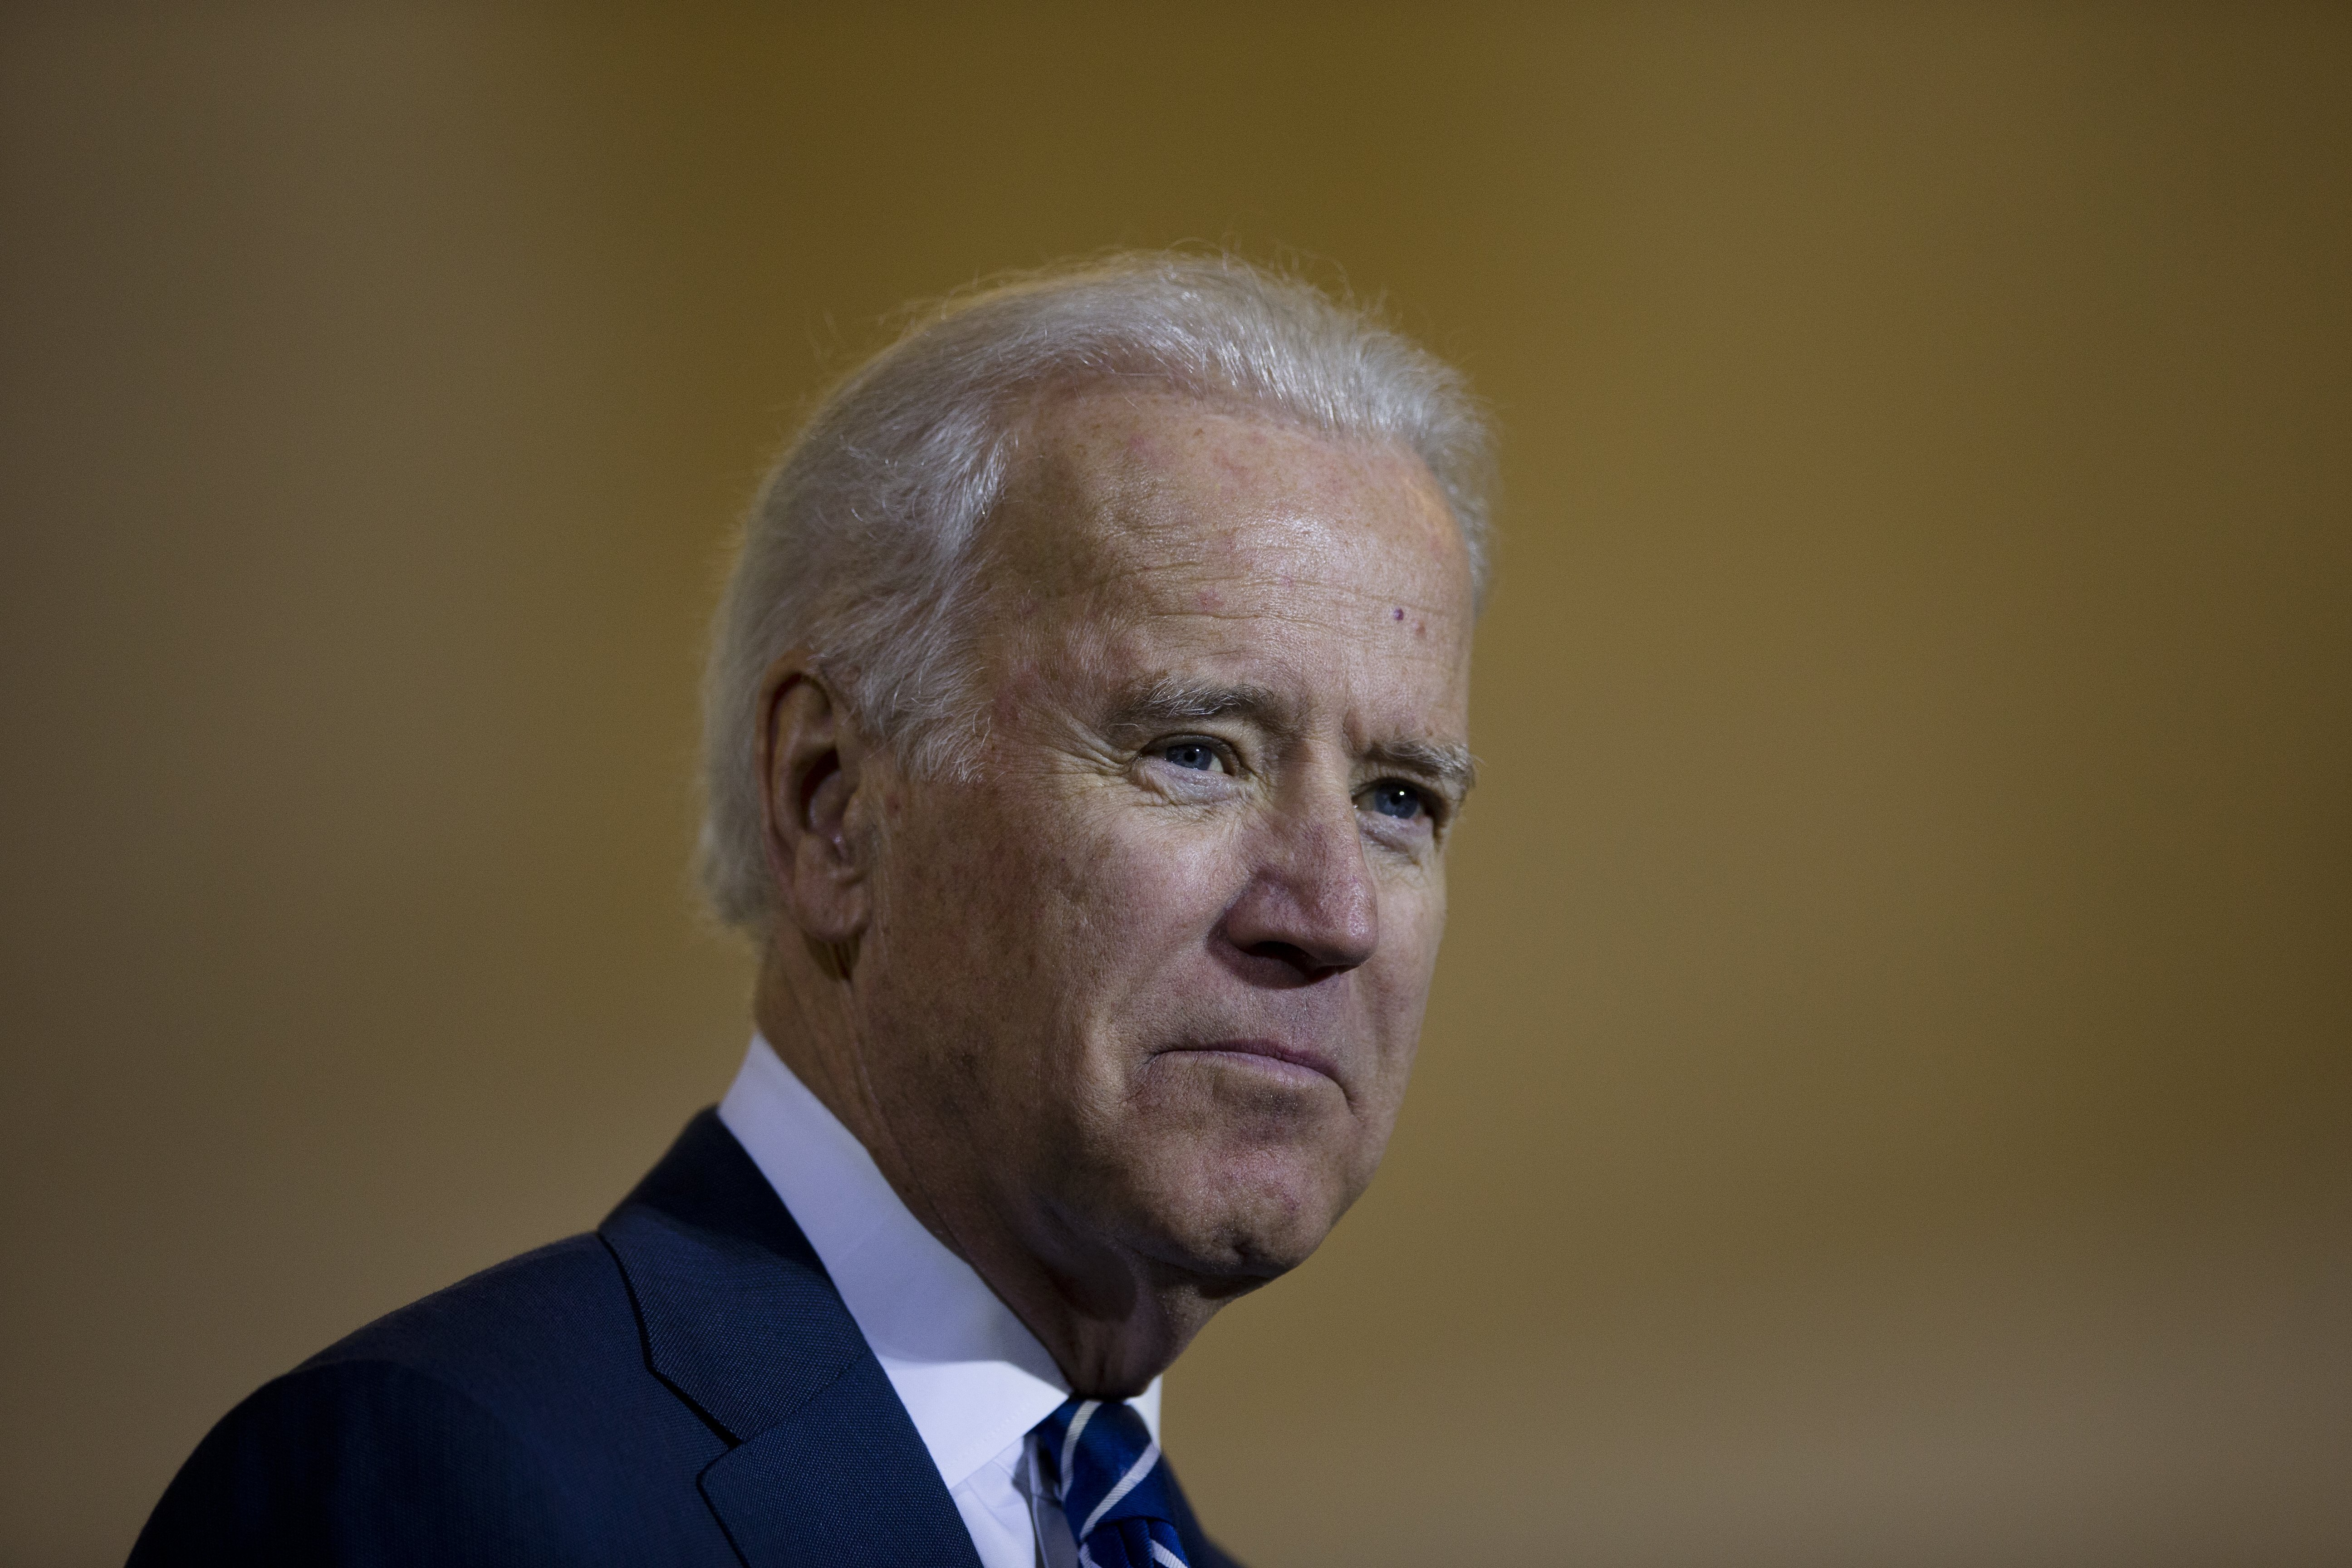 Vice President Joe Biden listens to remarks at a news conference, Feb. 6, 2014, at 30th Street Station in Philadelphia.